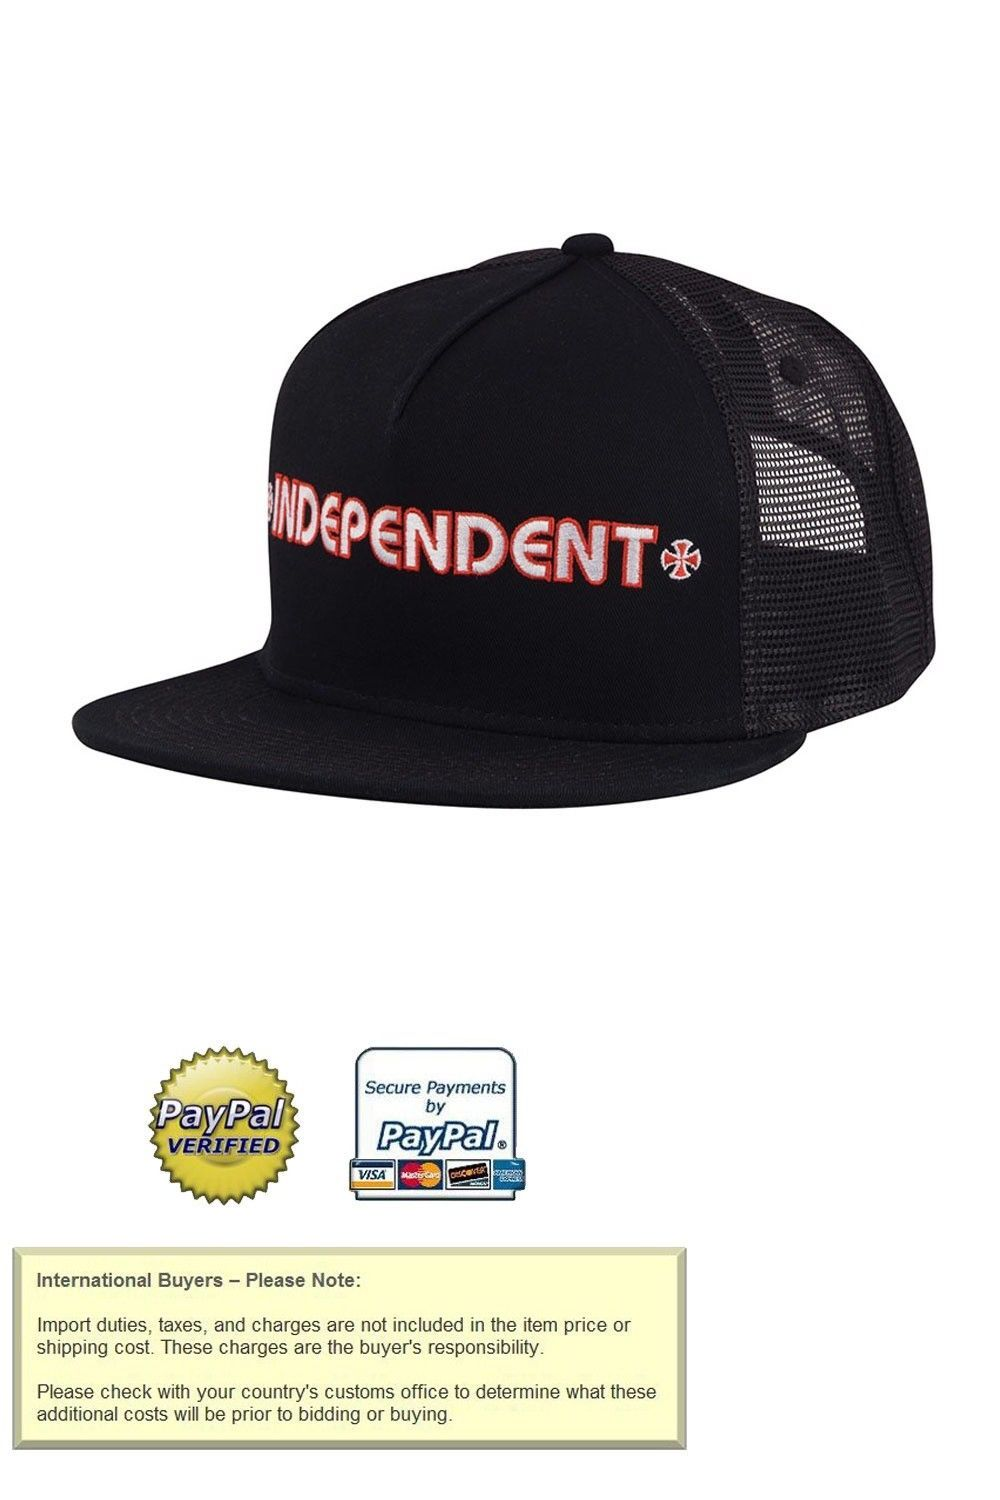 6d74d0f4b2ca6 Clothing Shoes and Accessories 159077  Independent Trucks Bar Logo Snapback Skateboard  Trucker Hat Black -  BUY IT NOW ONLY   22.95 on eBay!